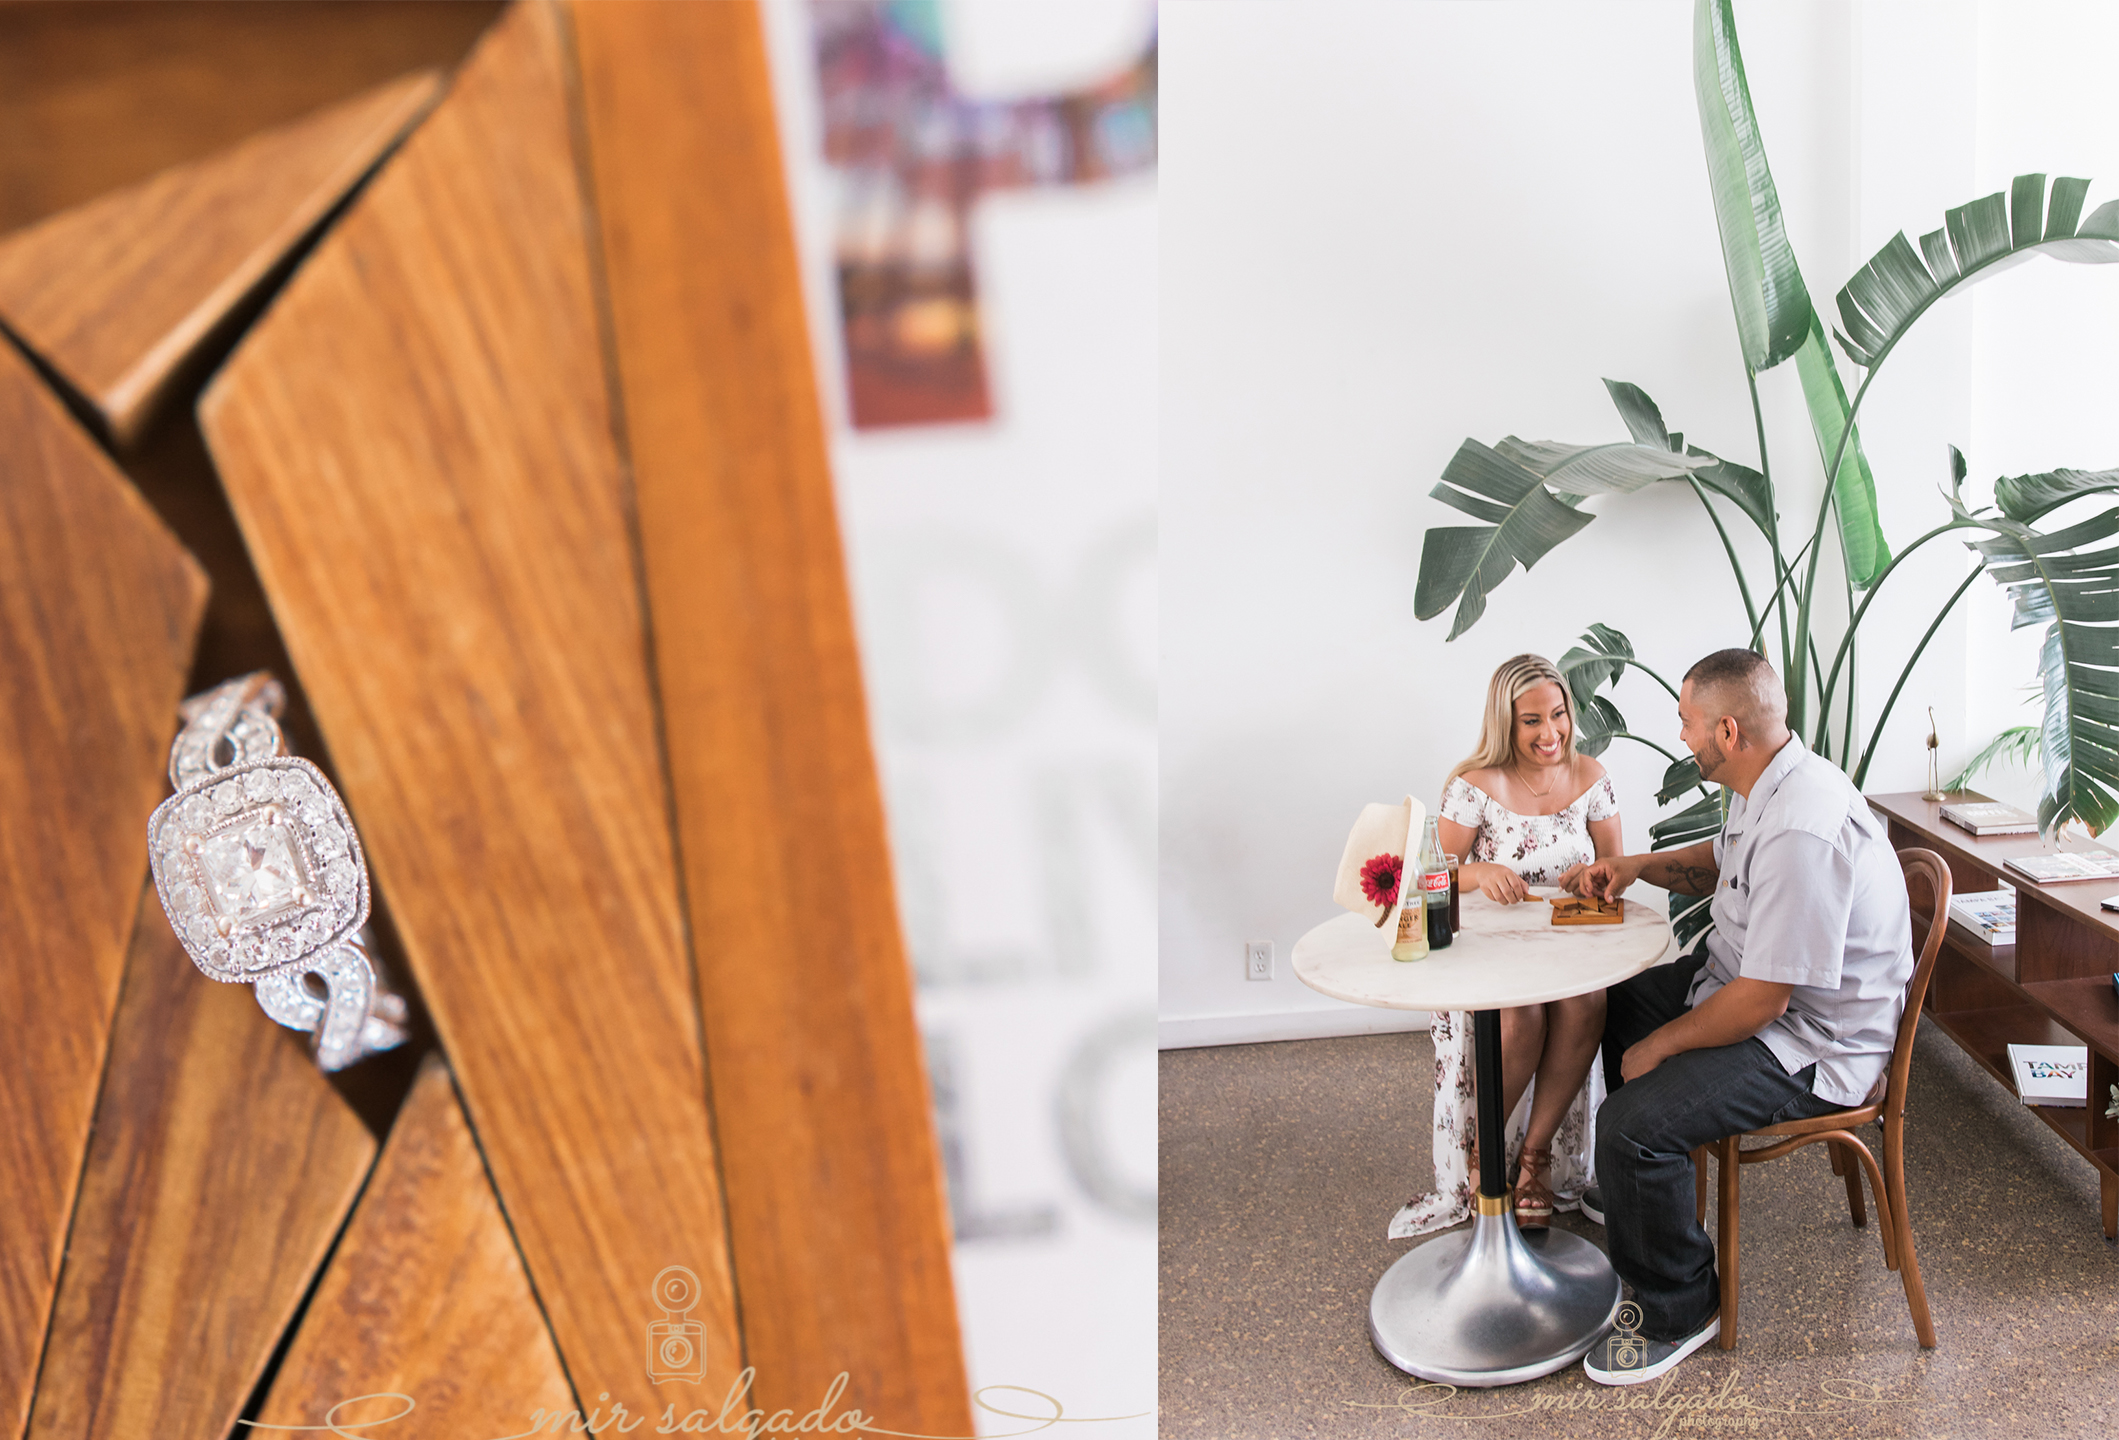 miriam-photography-tampa-st-pete-engagement-session-sunny-floral-dress-diamond-ring-table-plants